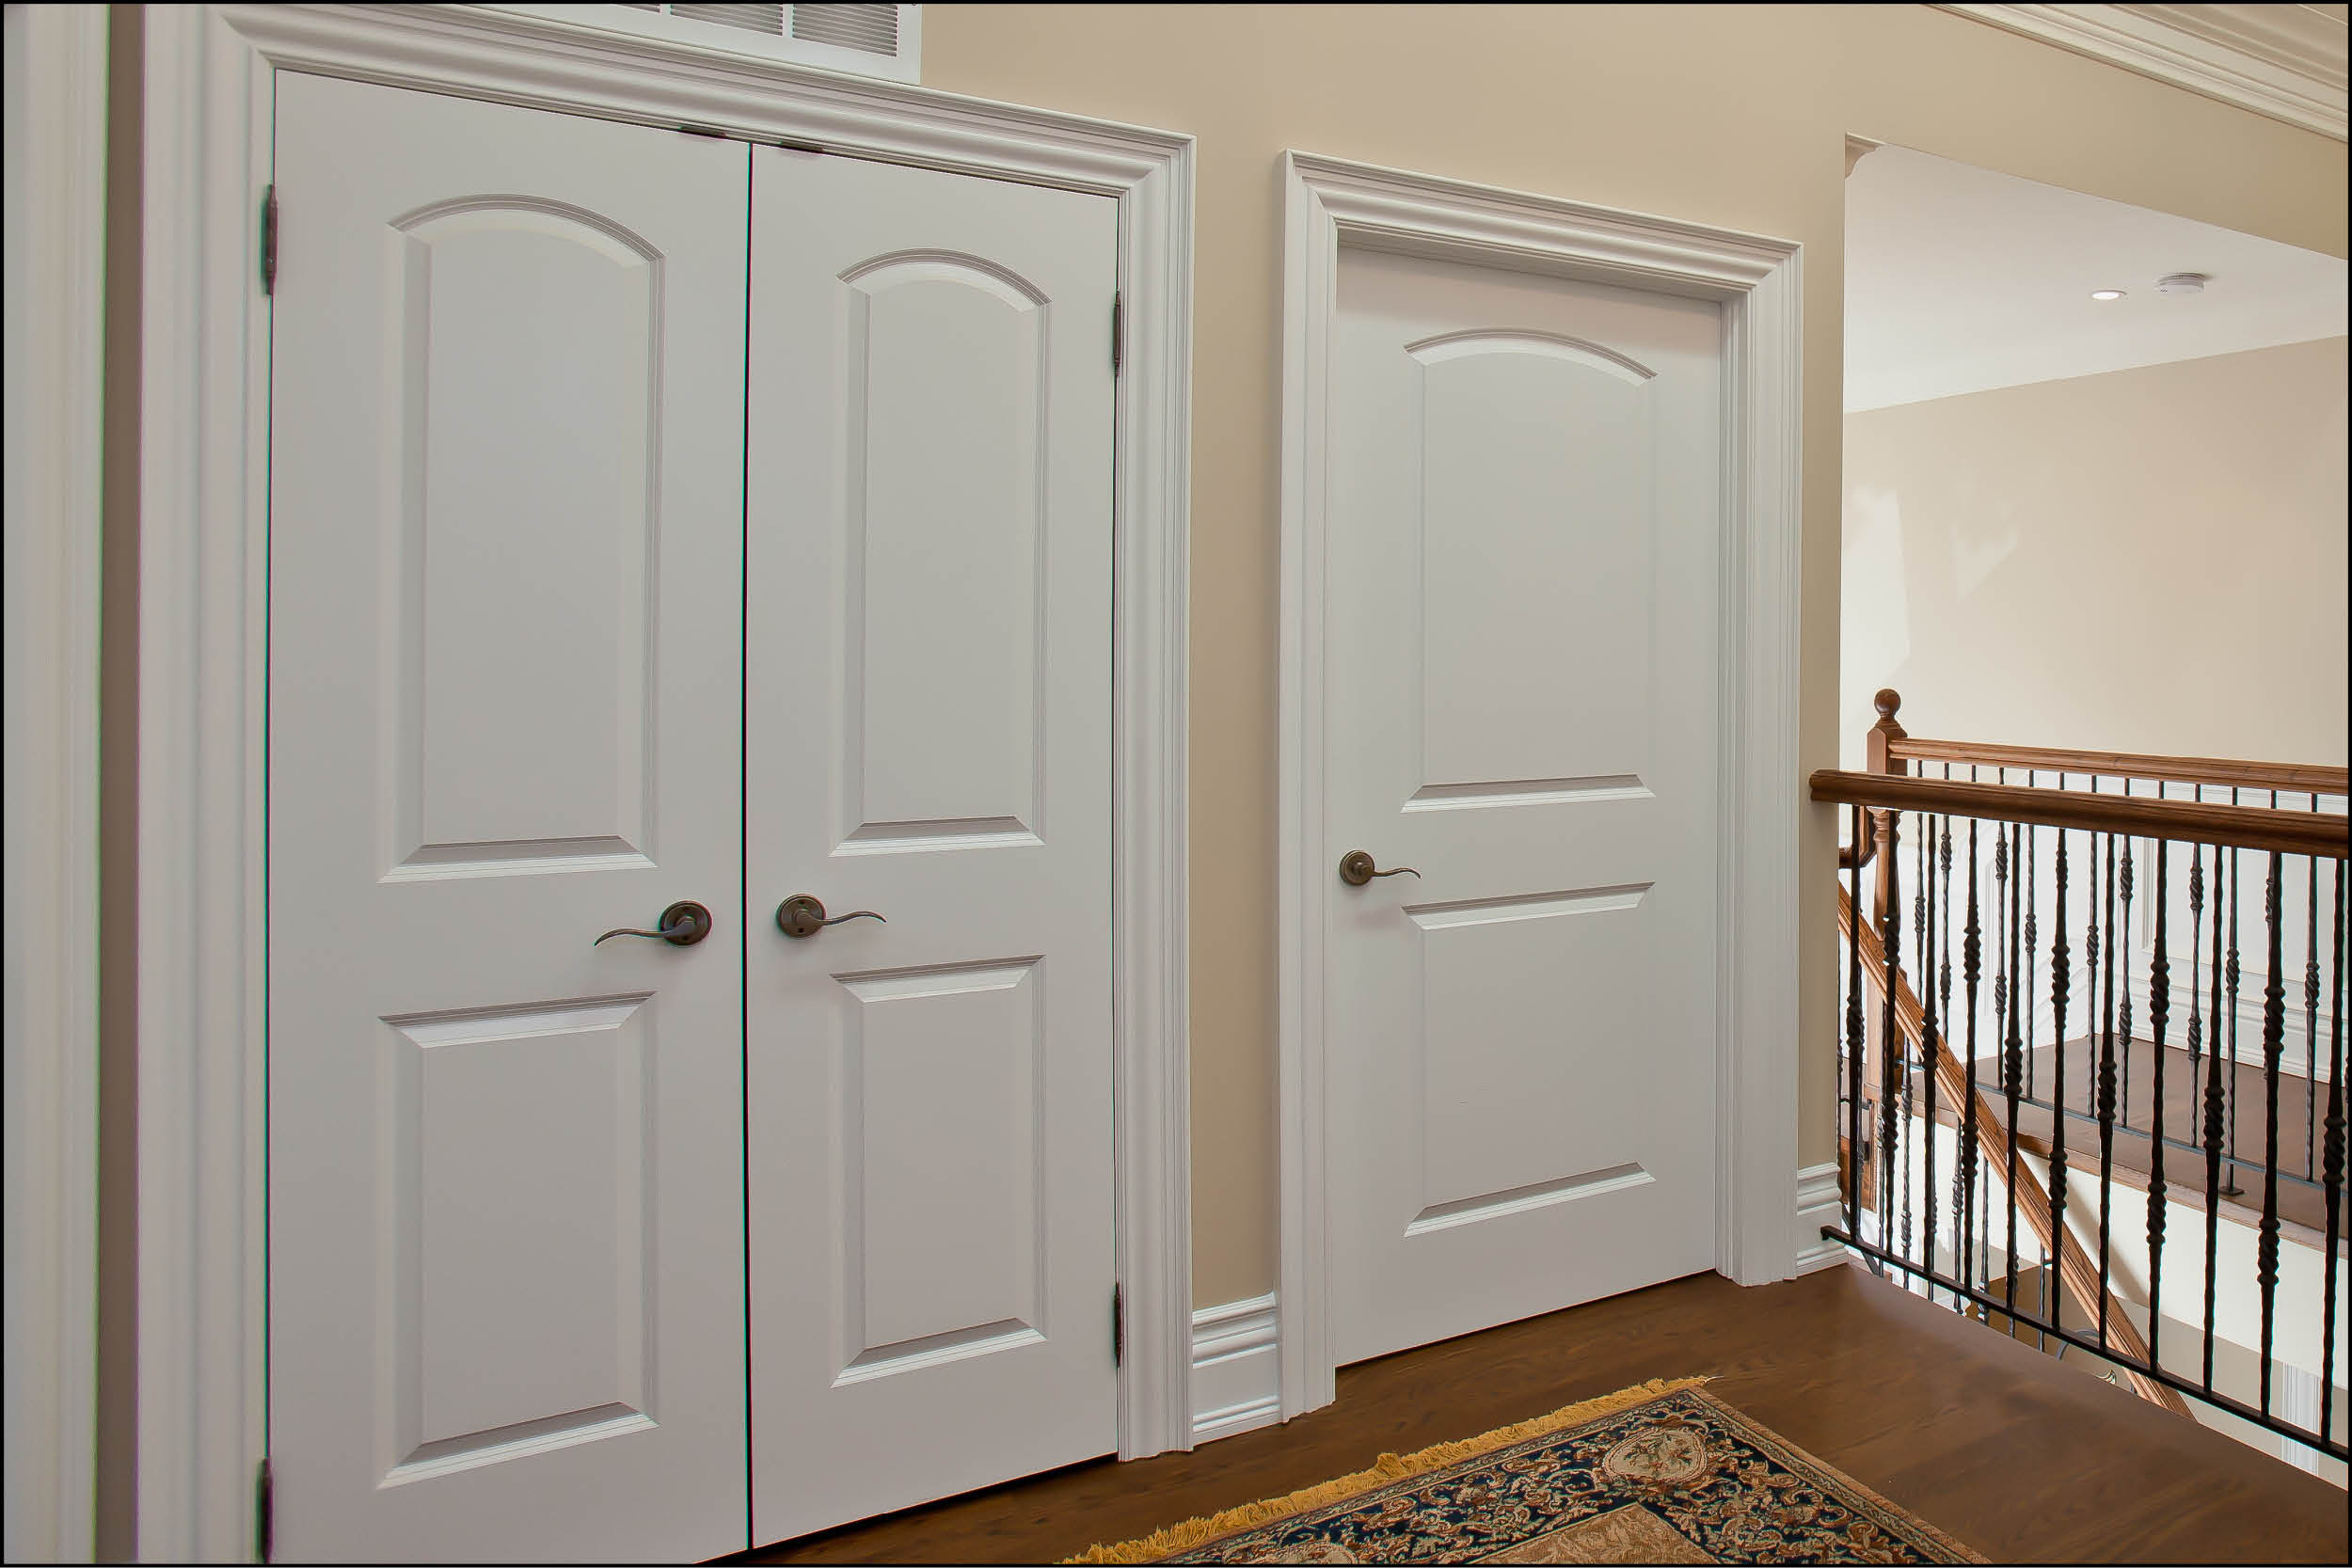 Interior Doors Roscoe IL   Kobyco   Replacement Windows, Interior And  Exterior Doors, Closet Organizers And More! Serving Rockford IL And  Surrounding Areas.